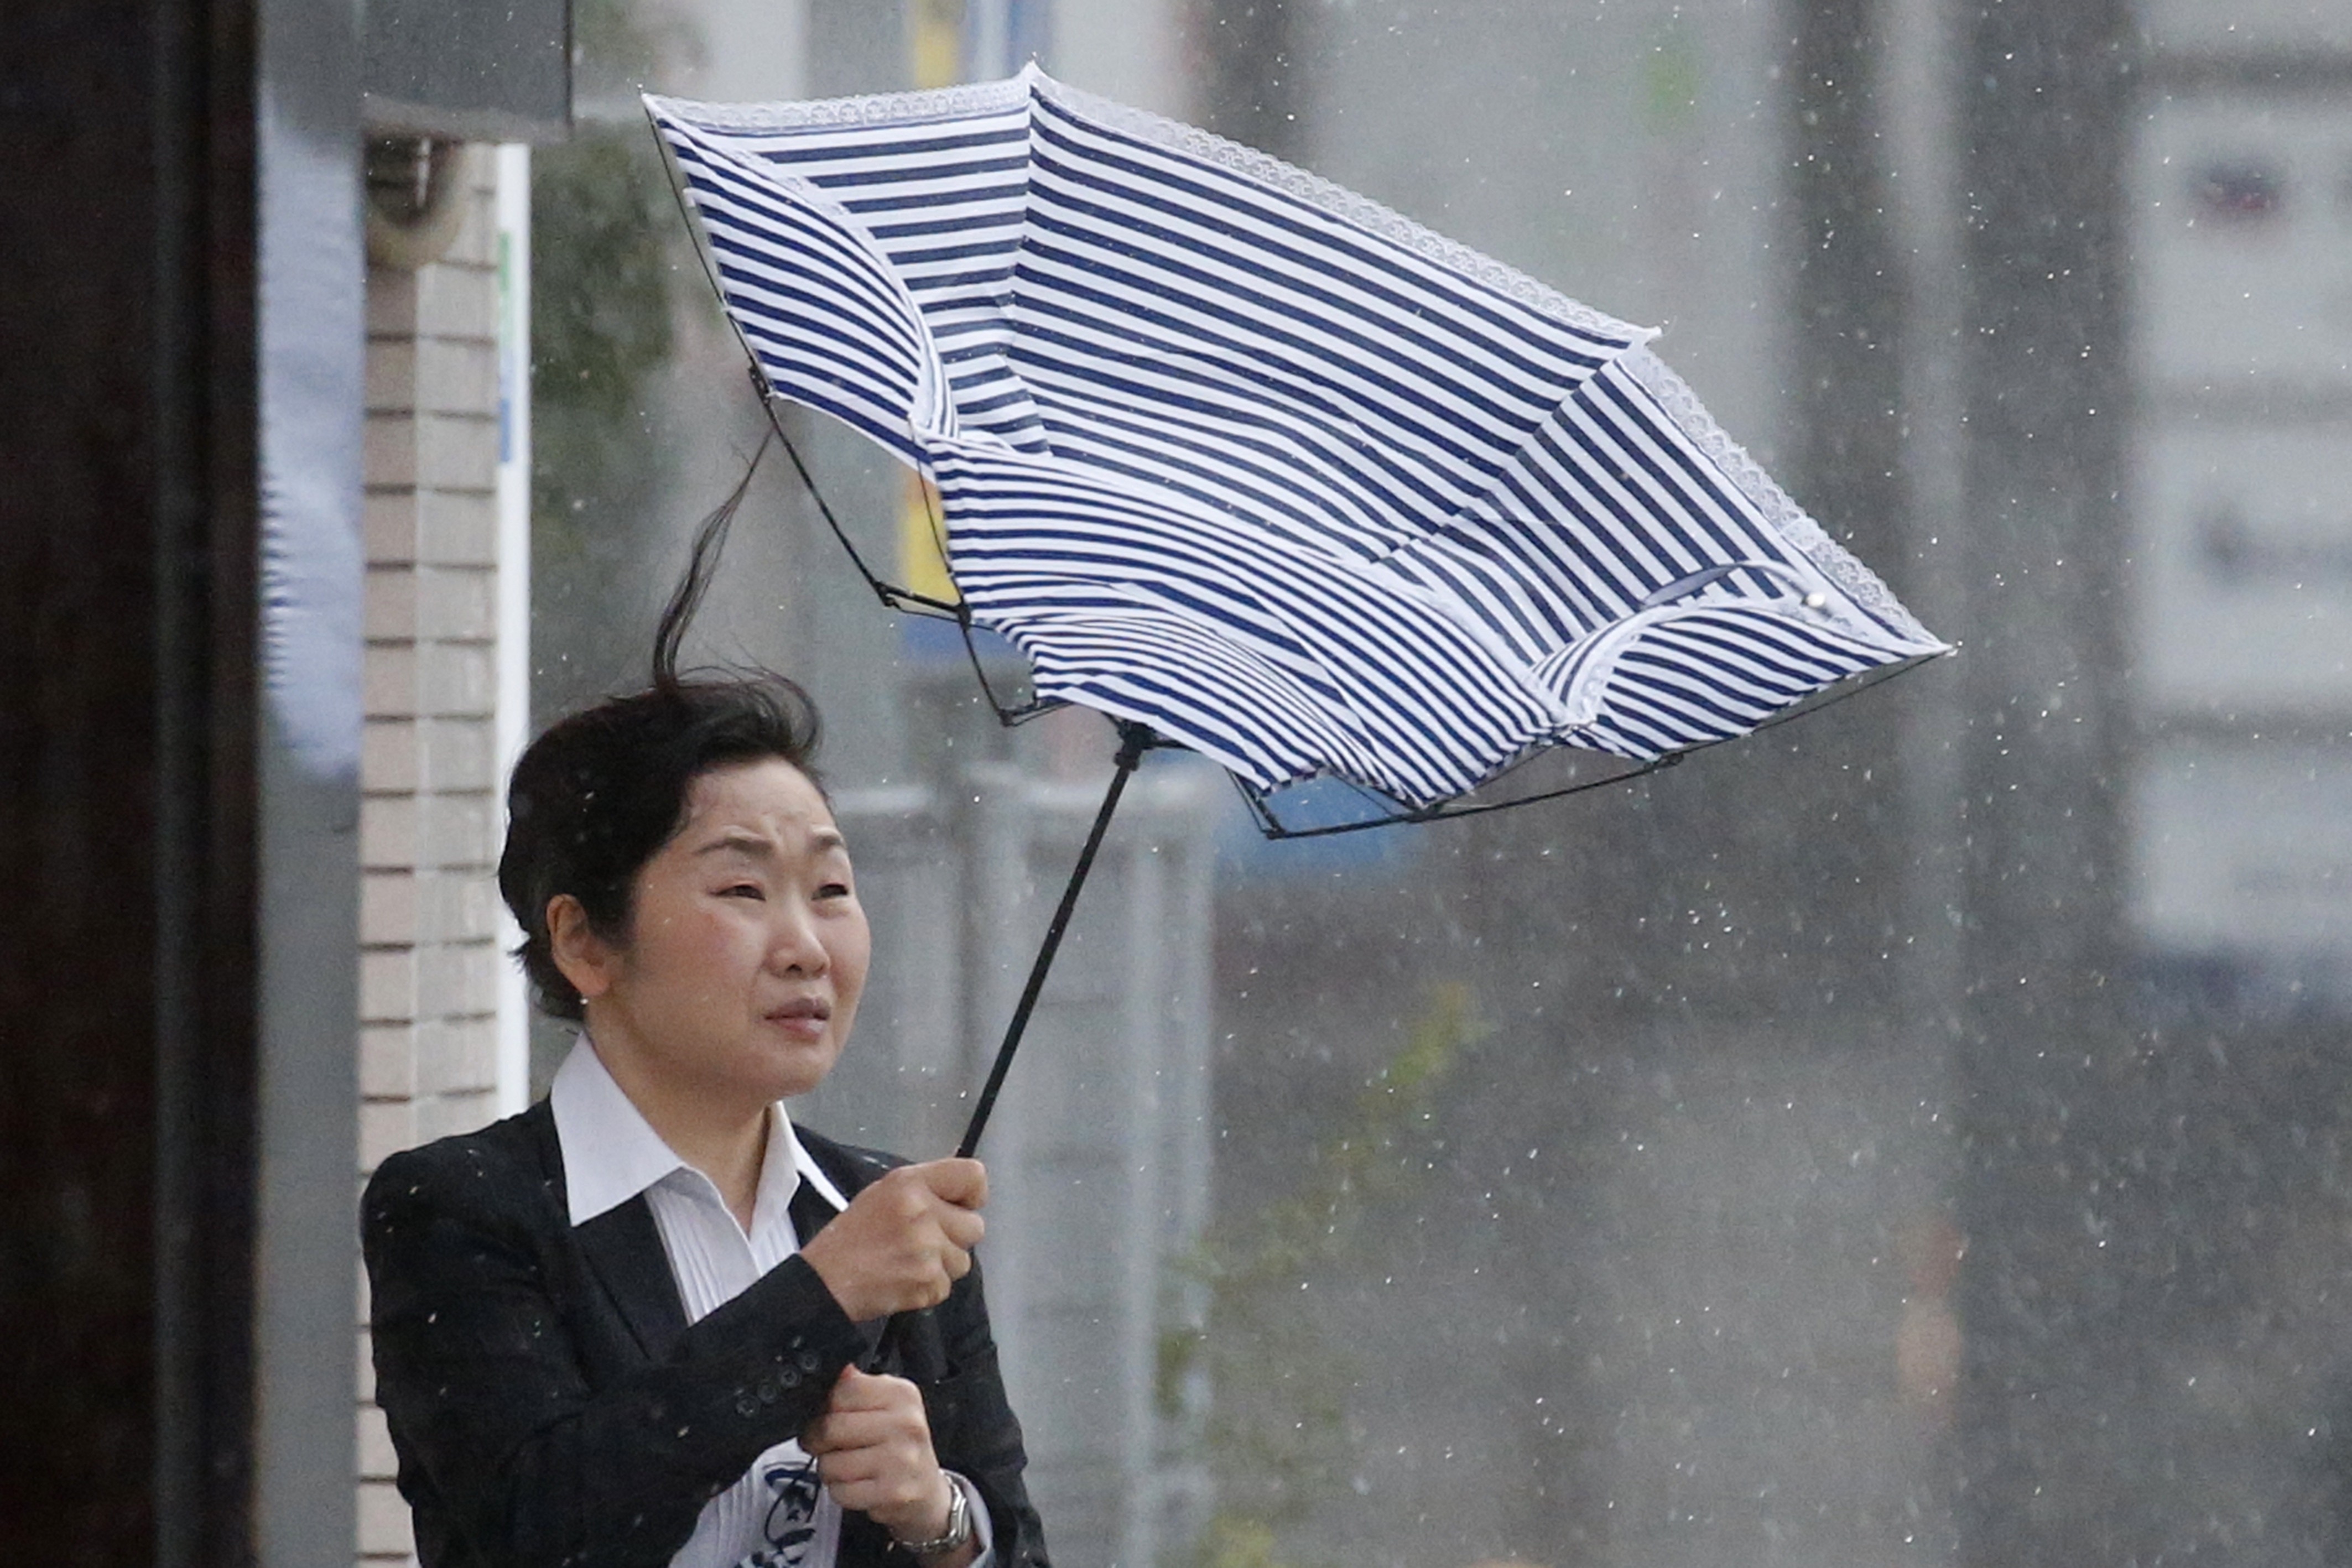 A woman using an umbrella struggles against strong wind and rain caused by Typhoon Jebi, in Tokyo, Japan, Sept. 4, 2018.